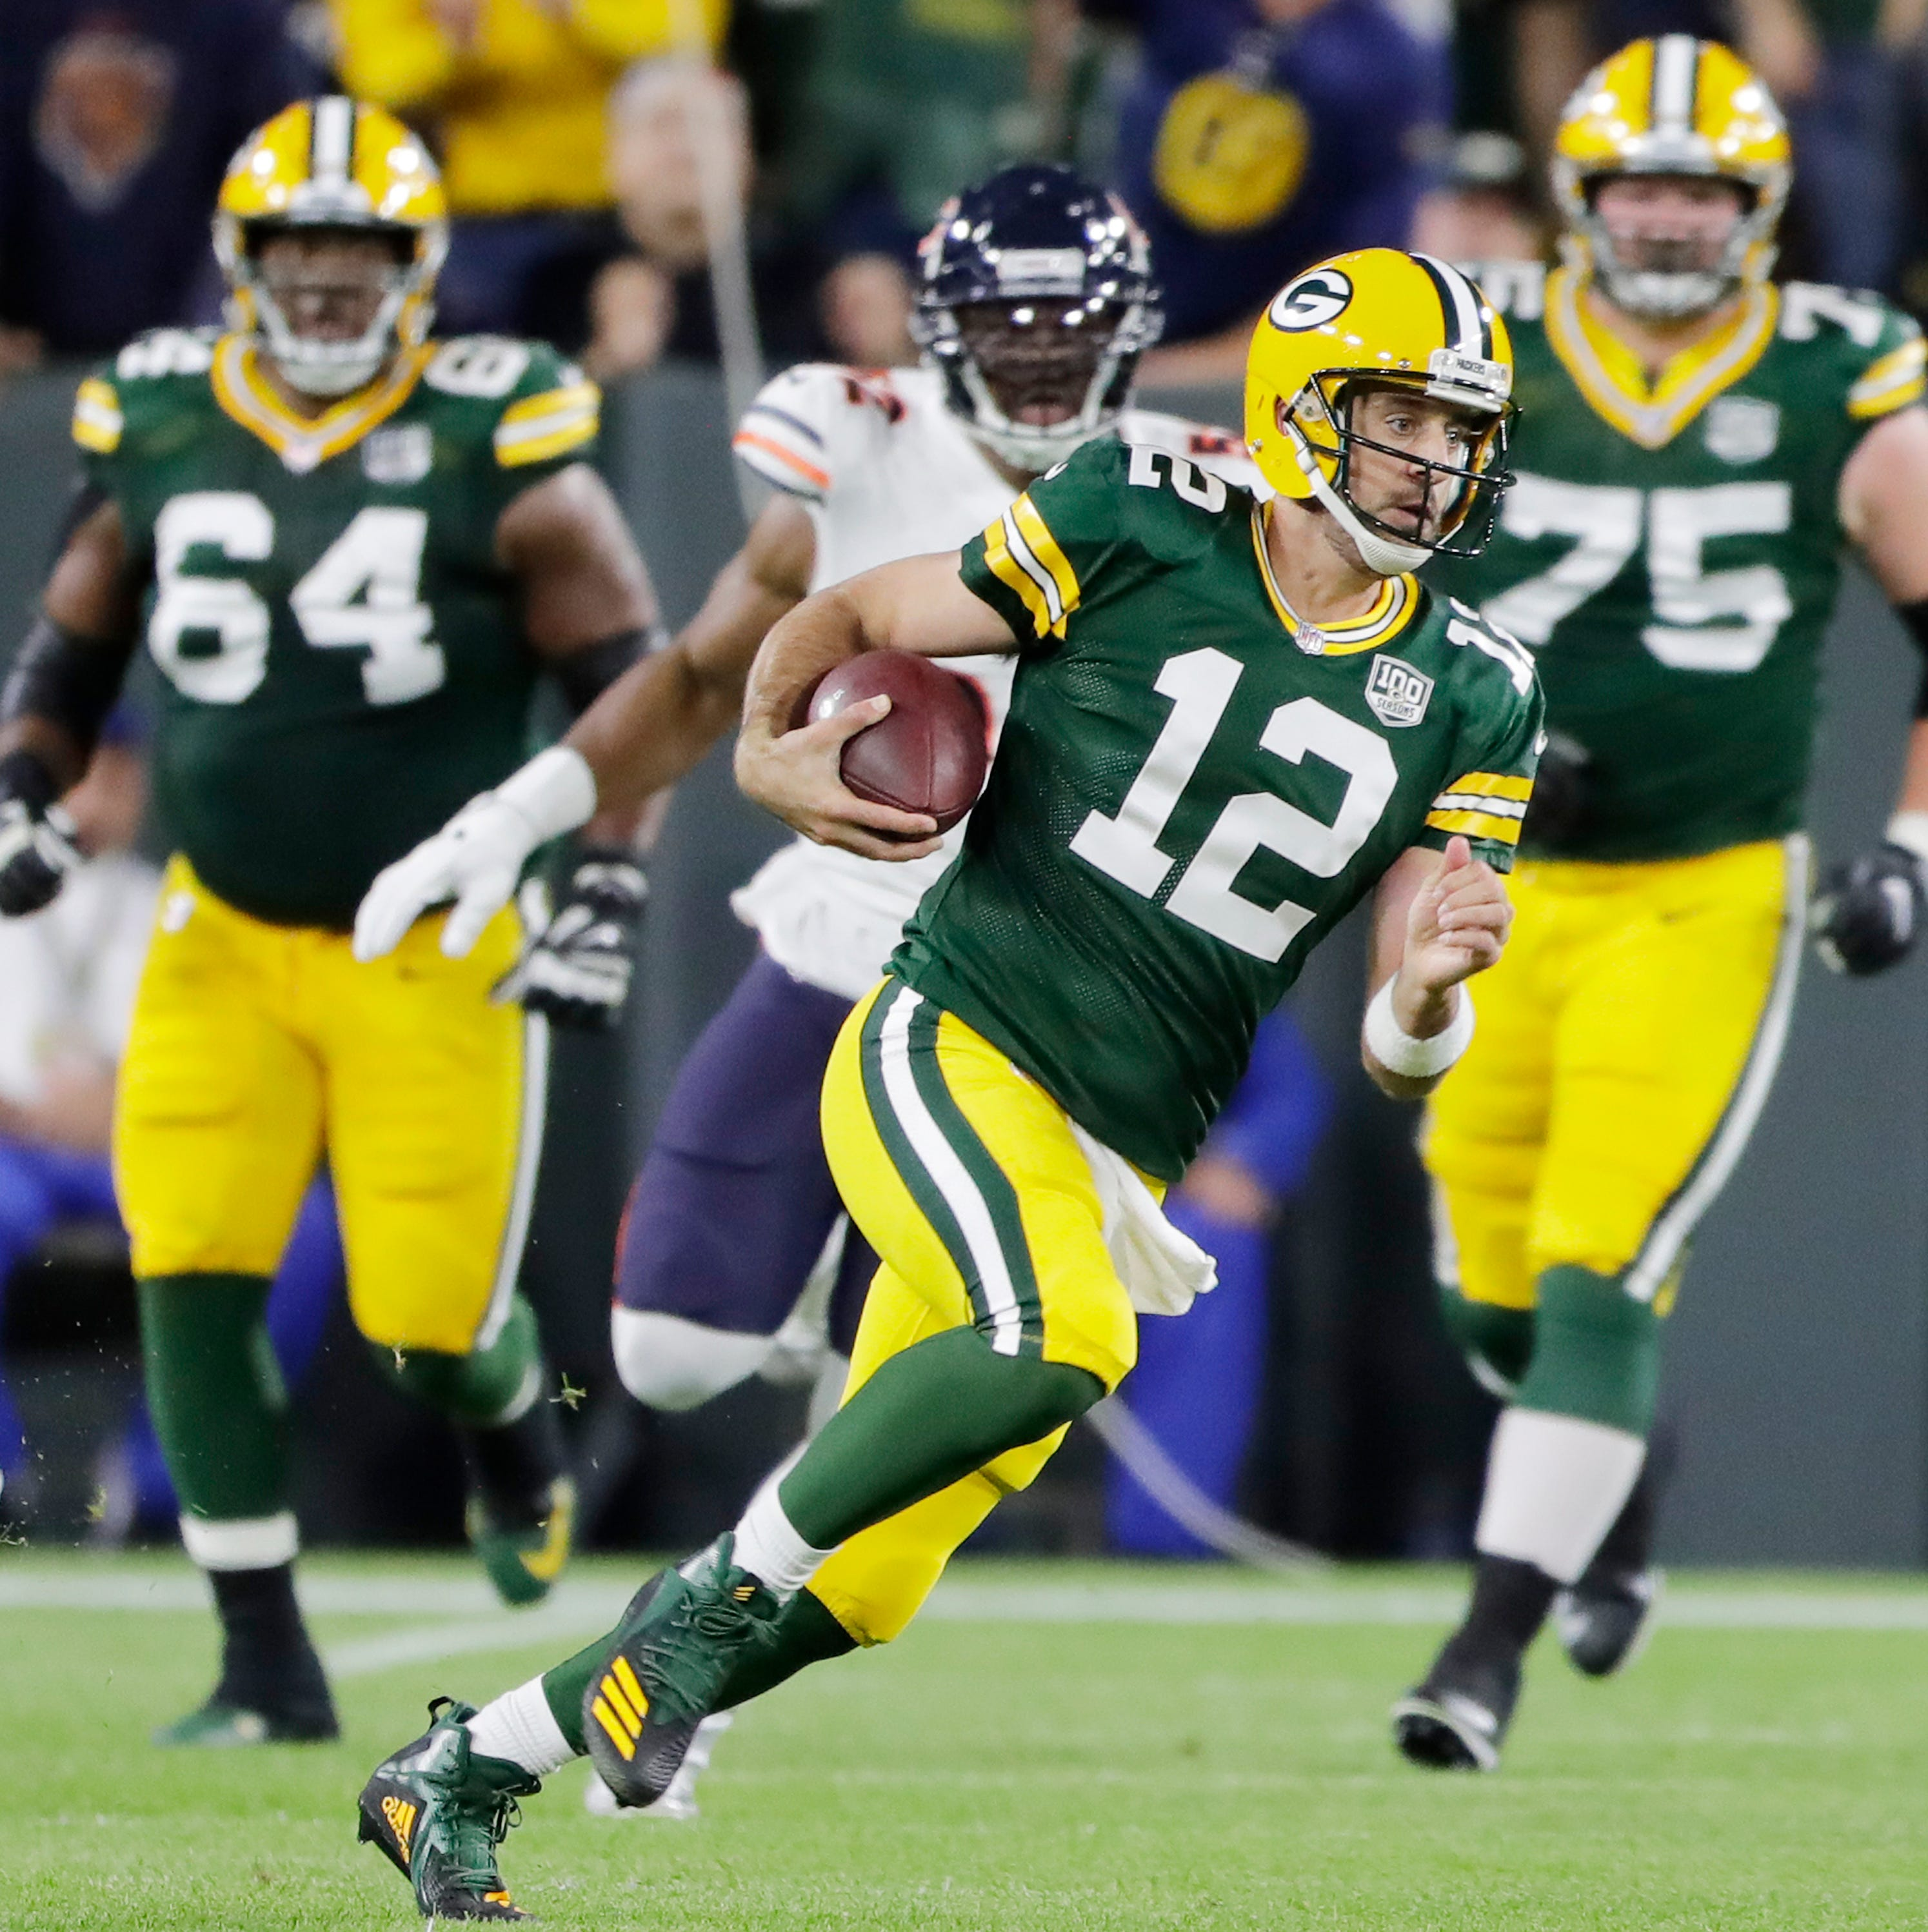 Packers, Bears go in different directions after 'special moment' in Aaron Rodgers' career